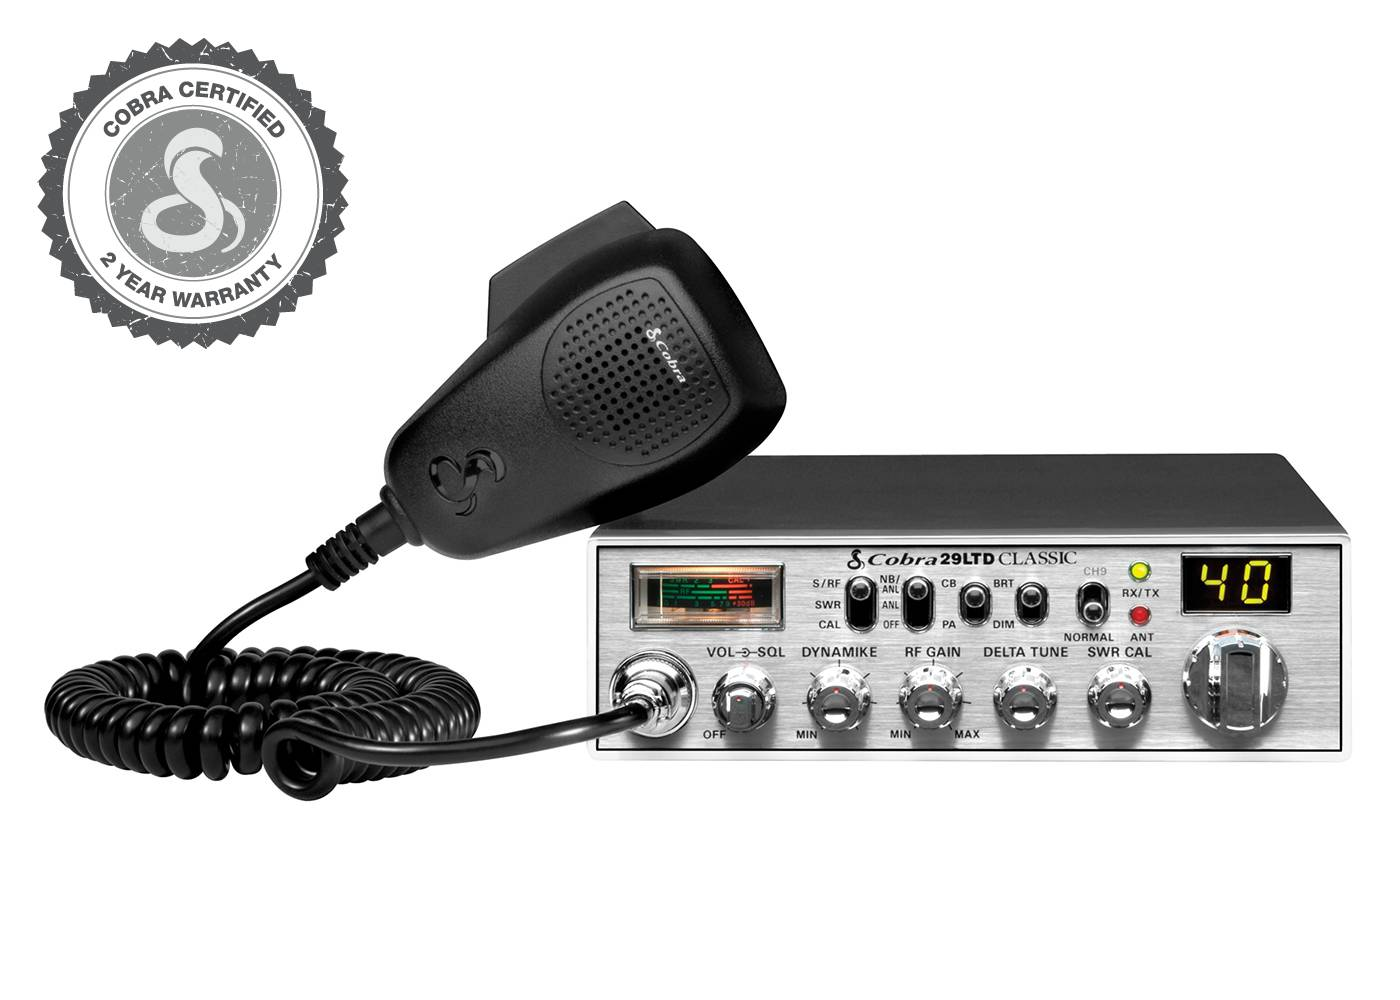 Cobra 29 LTD (Open Box) Professional CB Radio